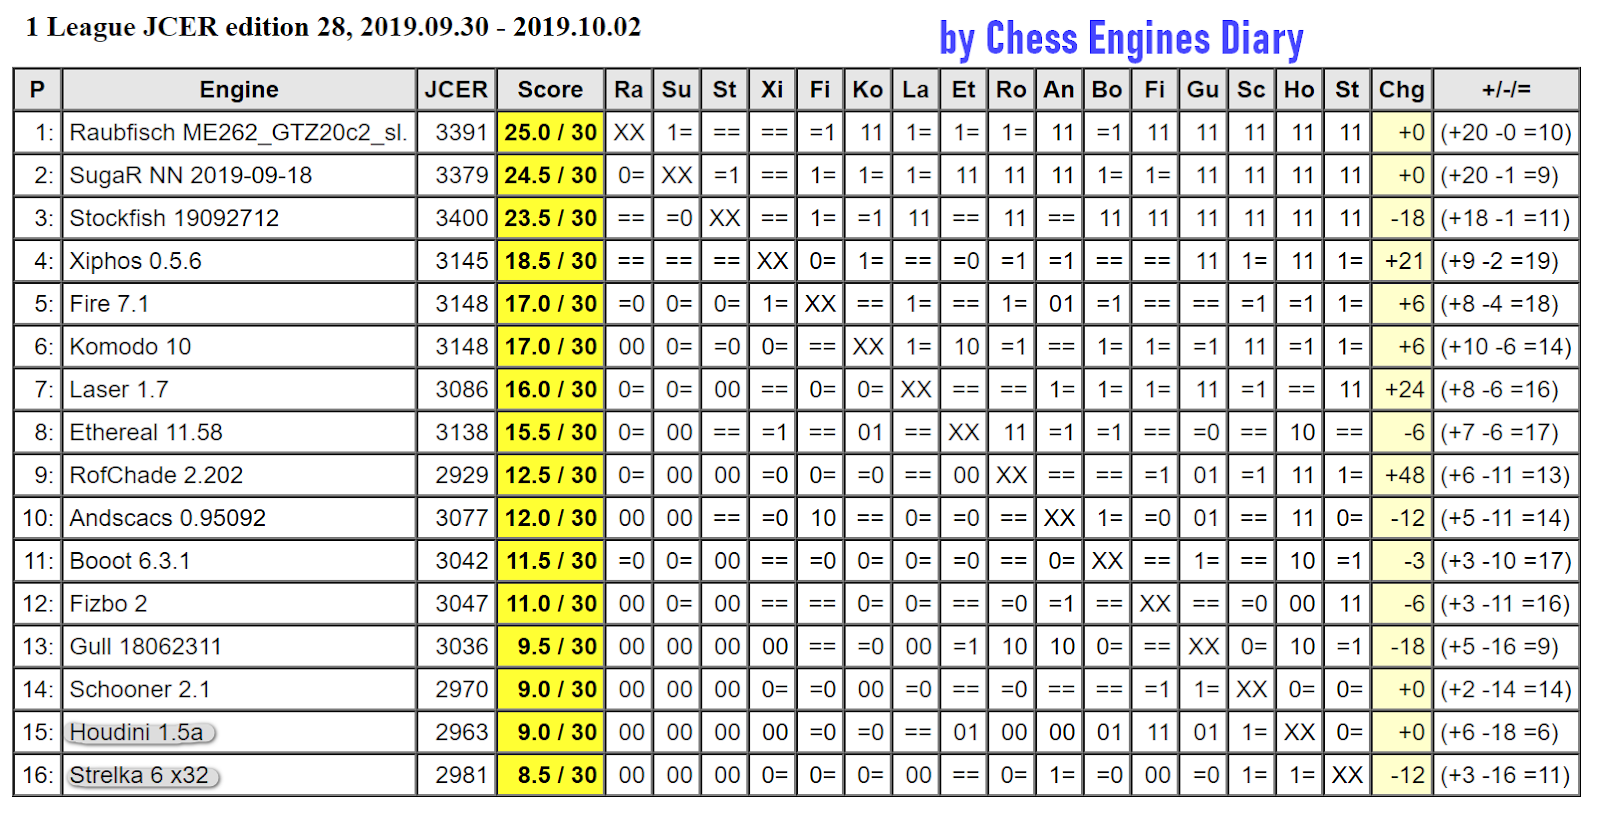 JCER (Jurek Chess Engines Rating) tournaments - Page 18 2019.09.30.1League.ed28Scid.html